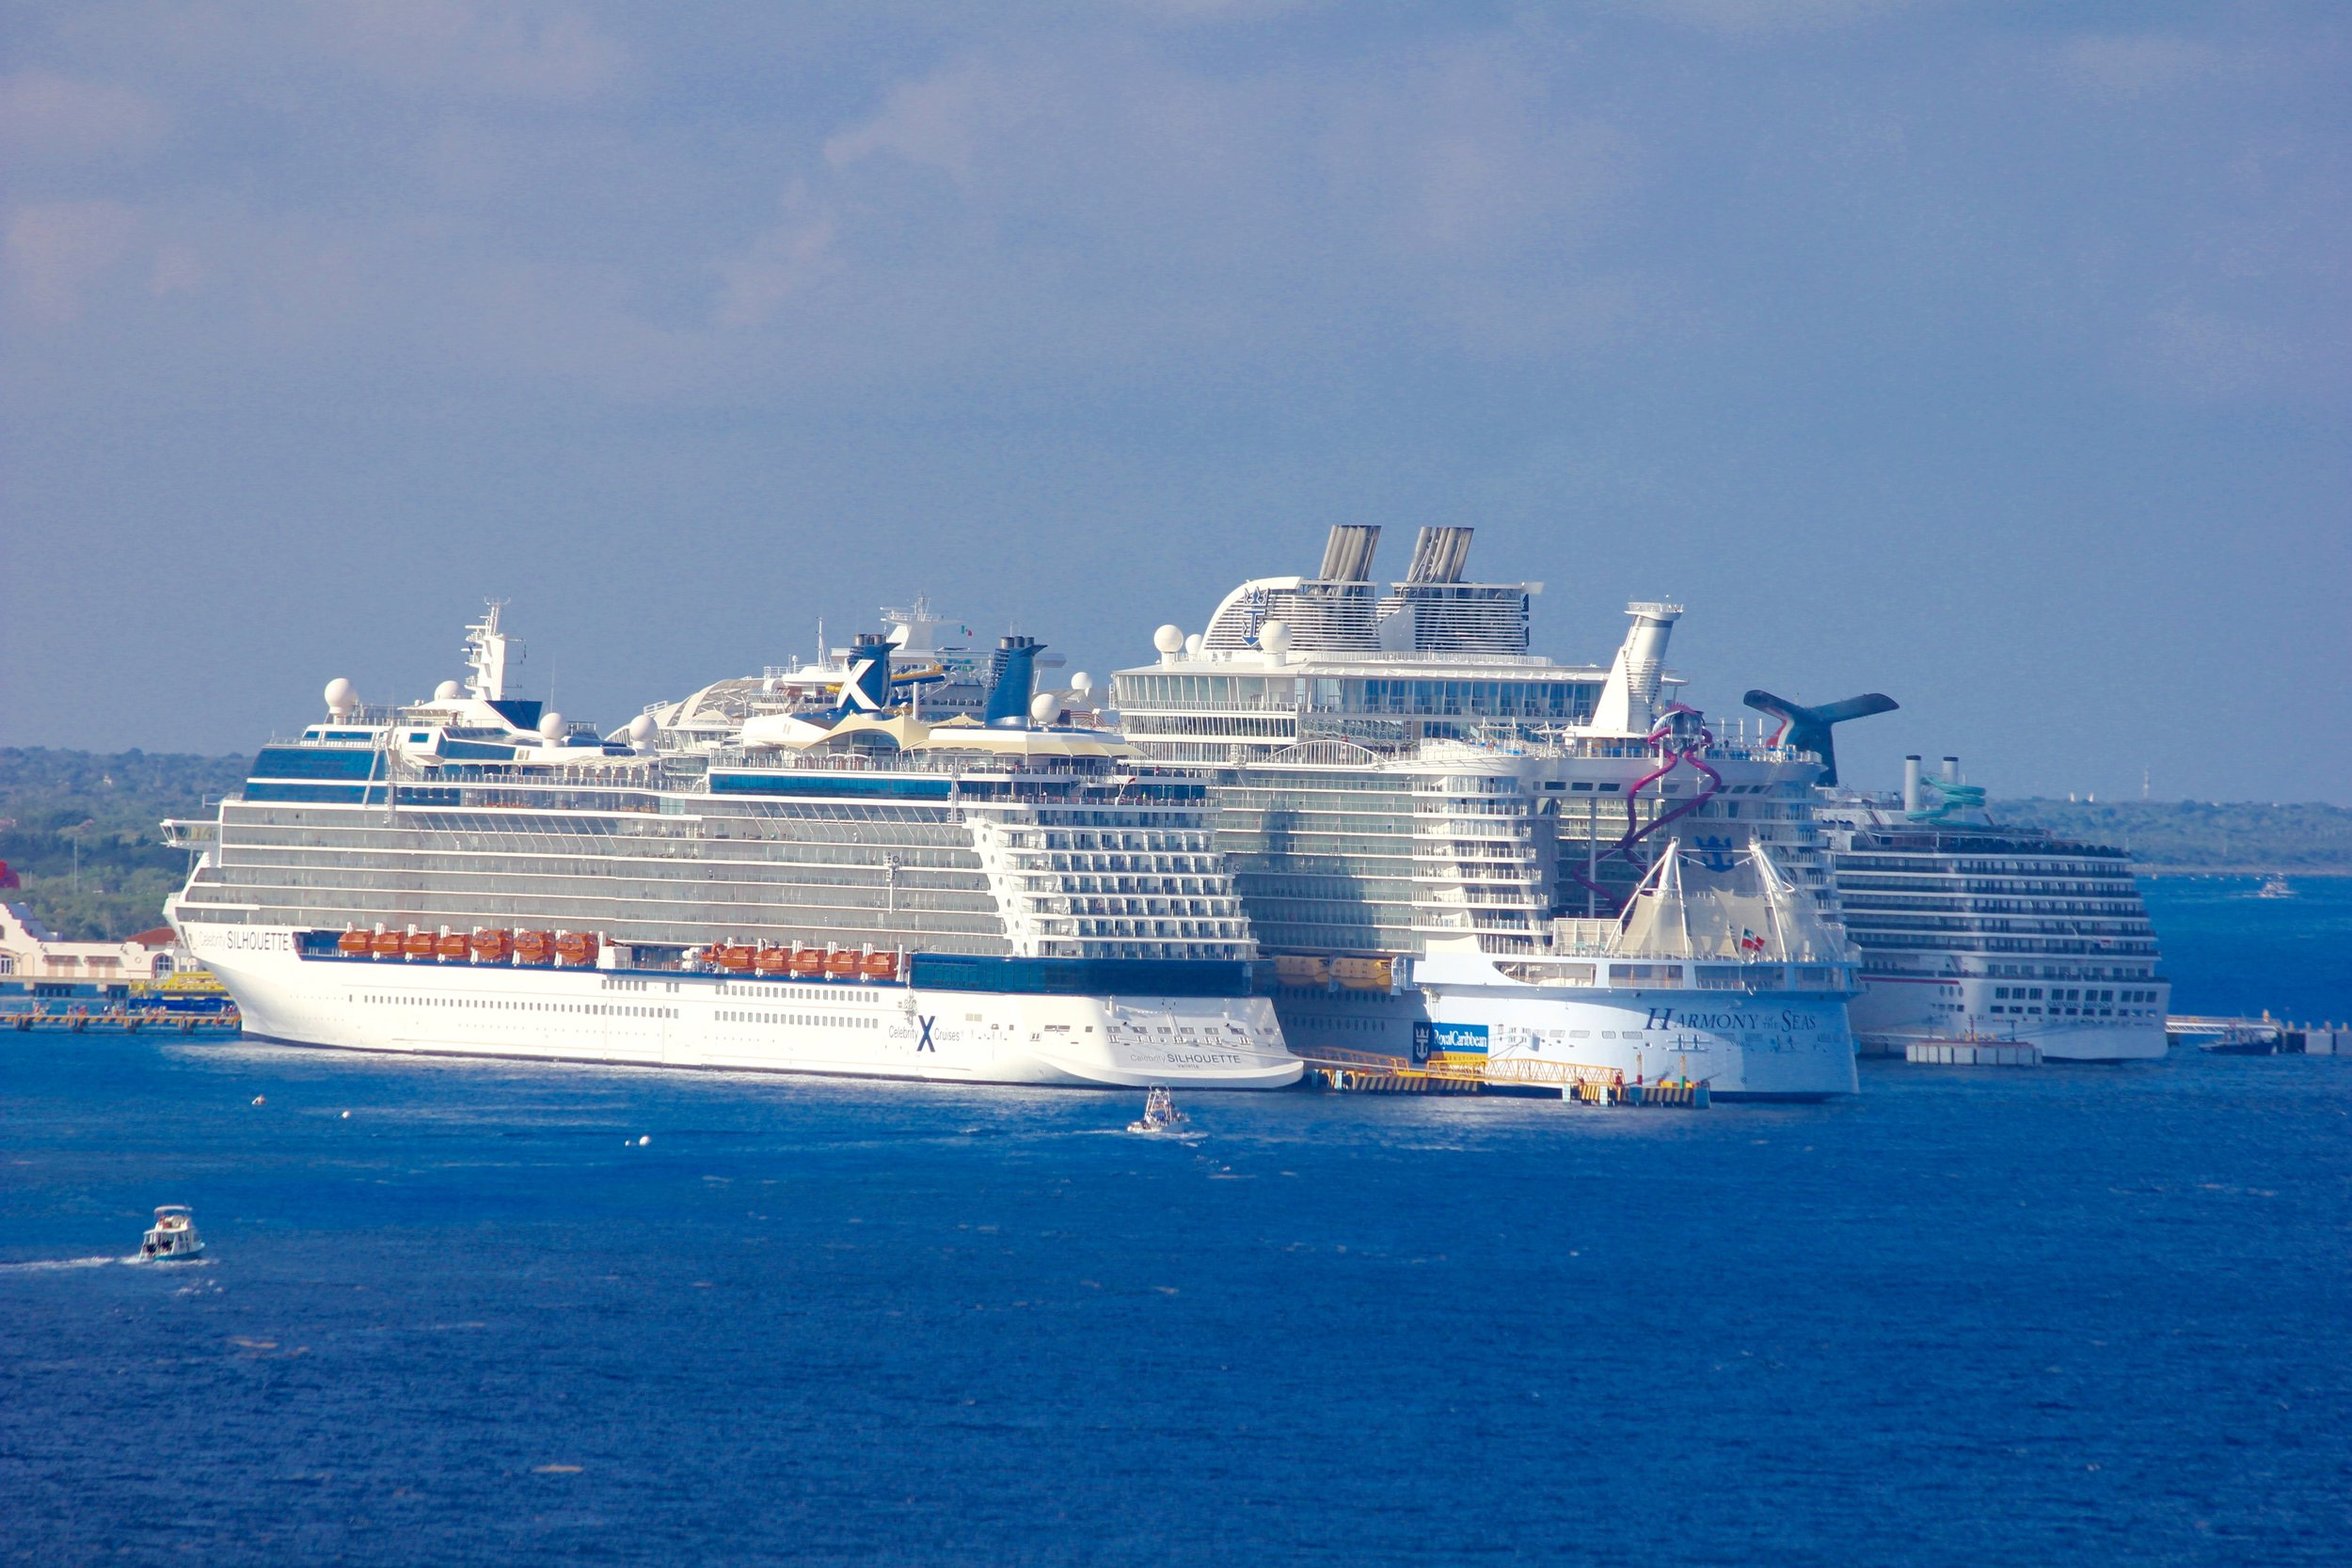 Celebrity Silhouette, Harmony of the Seas, Carnival Miracle, and Carnival Fantasy